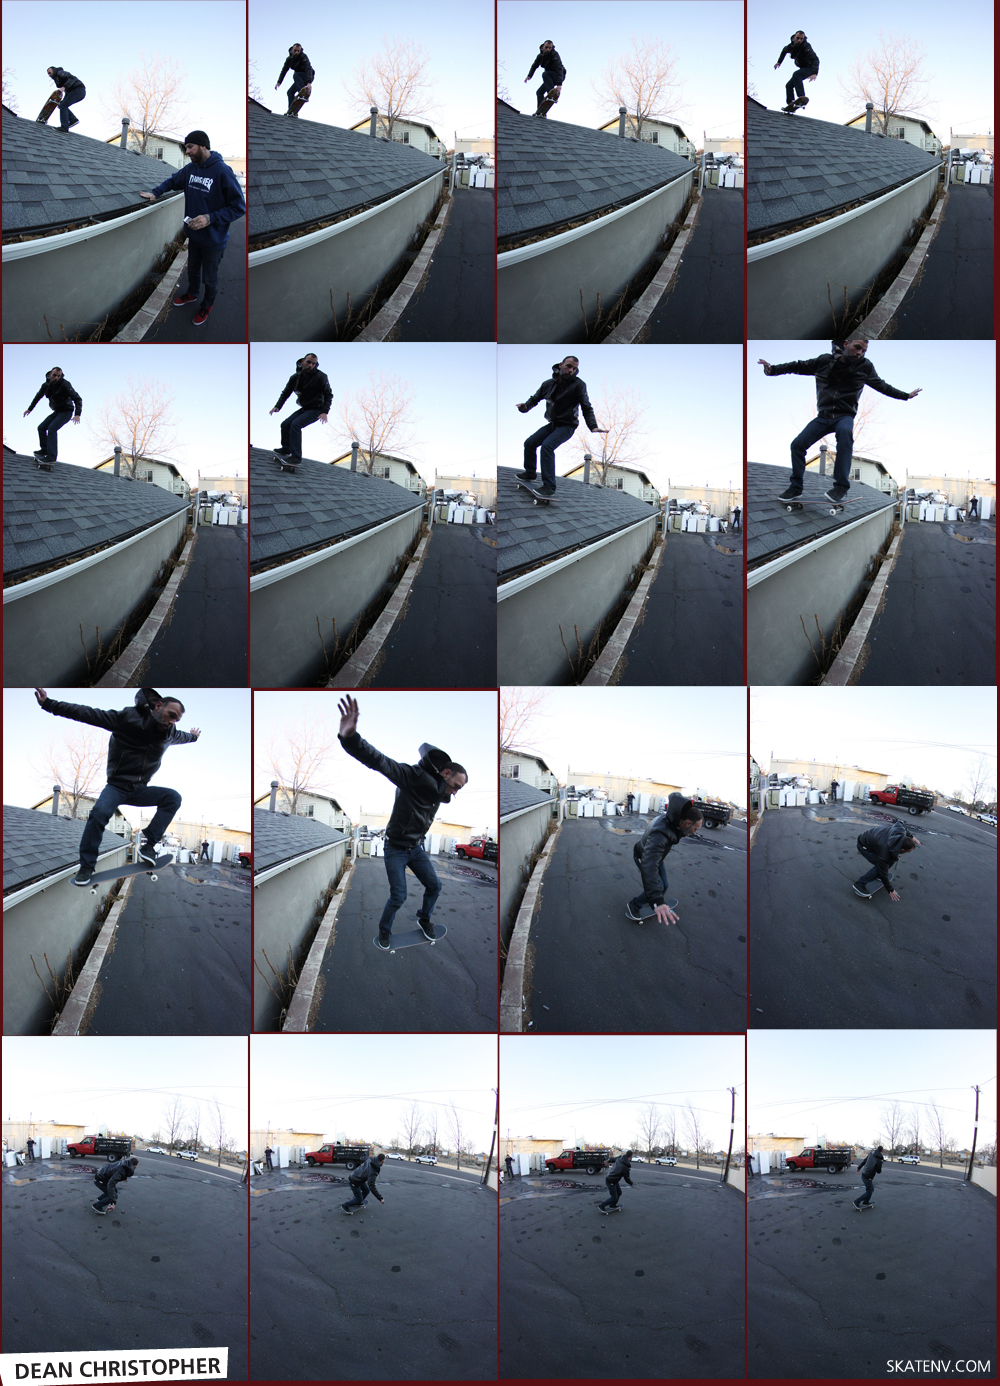 dean christopher reno skateboarding kyle volland